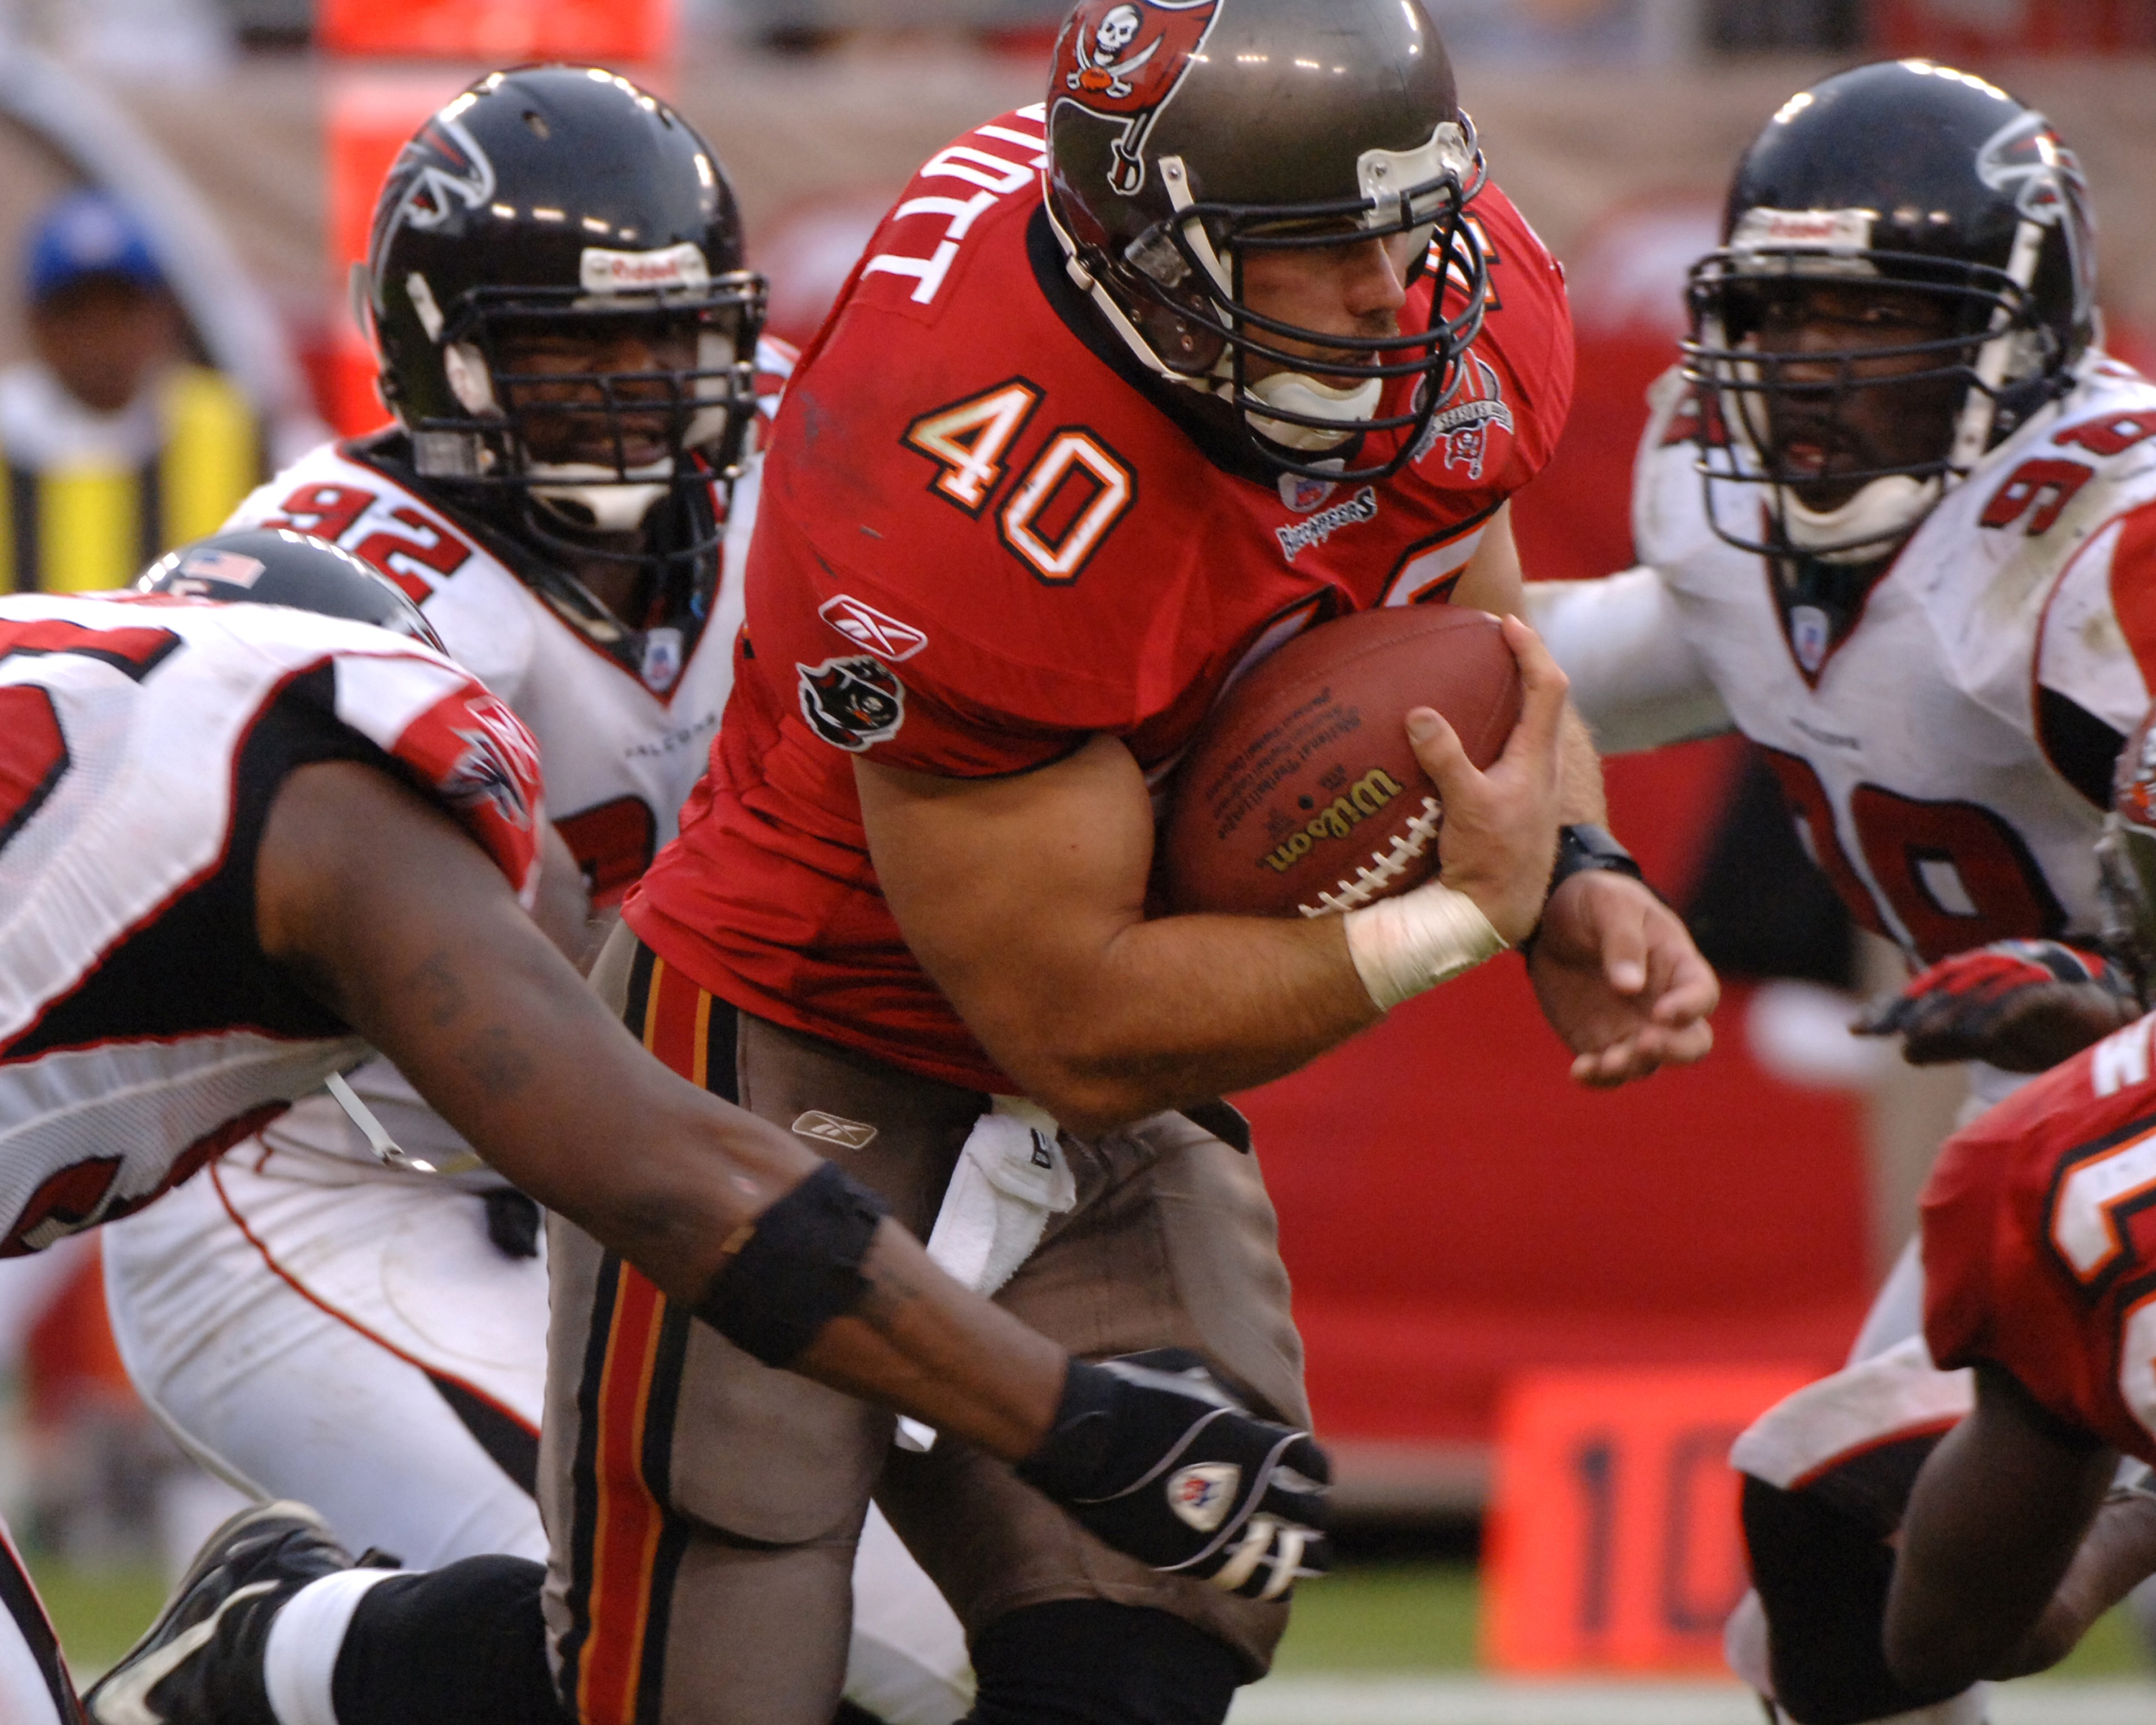 Tampa Bay Buccaneers fullback Mike Alstott rushes for a gain  against the Atlanta Falcons  December 24, 2005 in Tampa.  The Bucs defeated the Falcons 27 - 24.  (Photo by Al Messerschmidt/Getty Images)